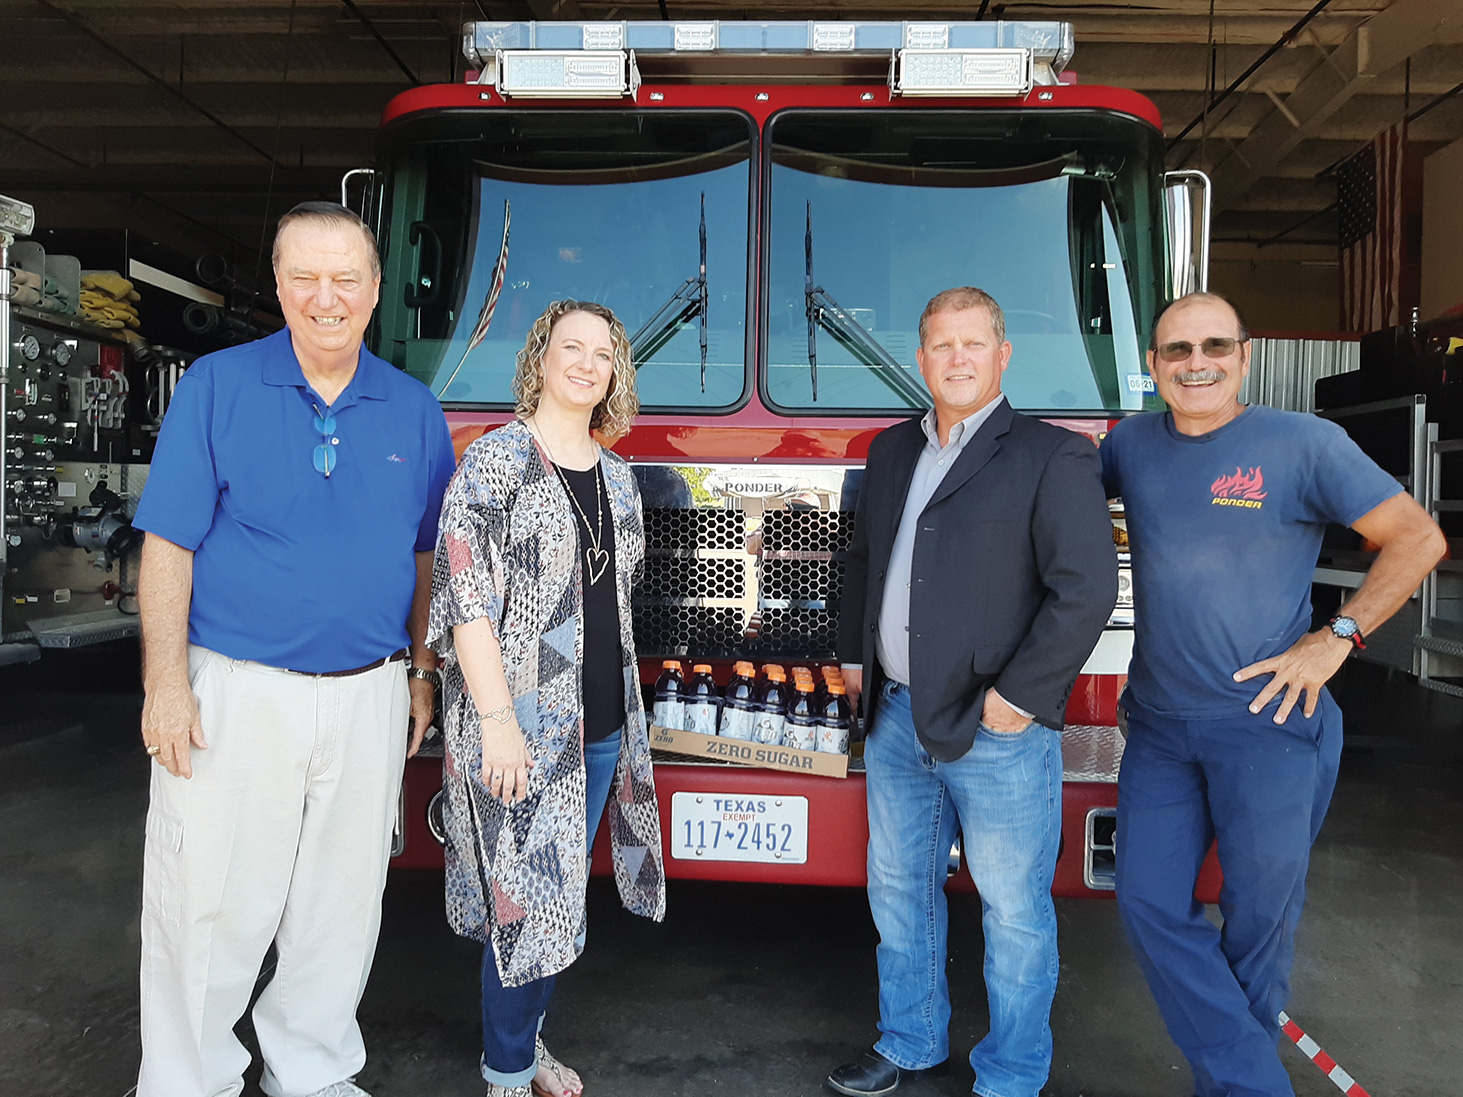 Rotary Club members Dave Everly, D'Lynn Reynolds, and Danny Fletcher and Ponder Fire Chief Andrew Economedes